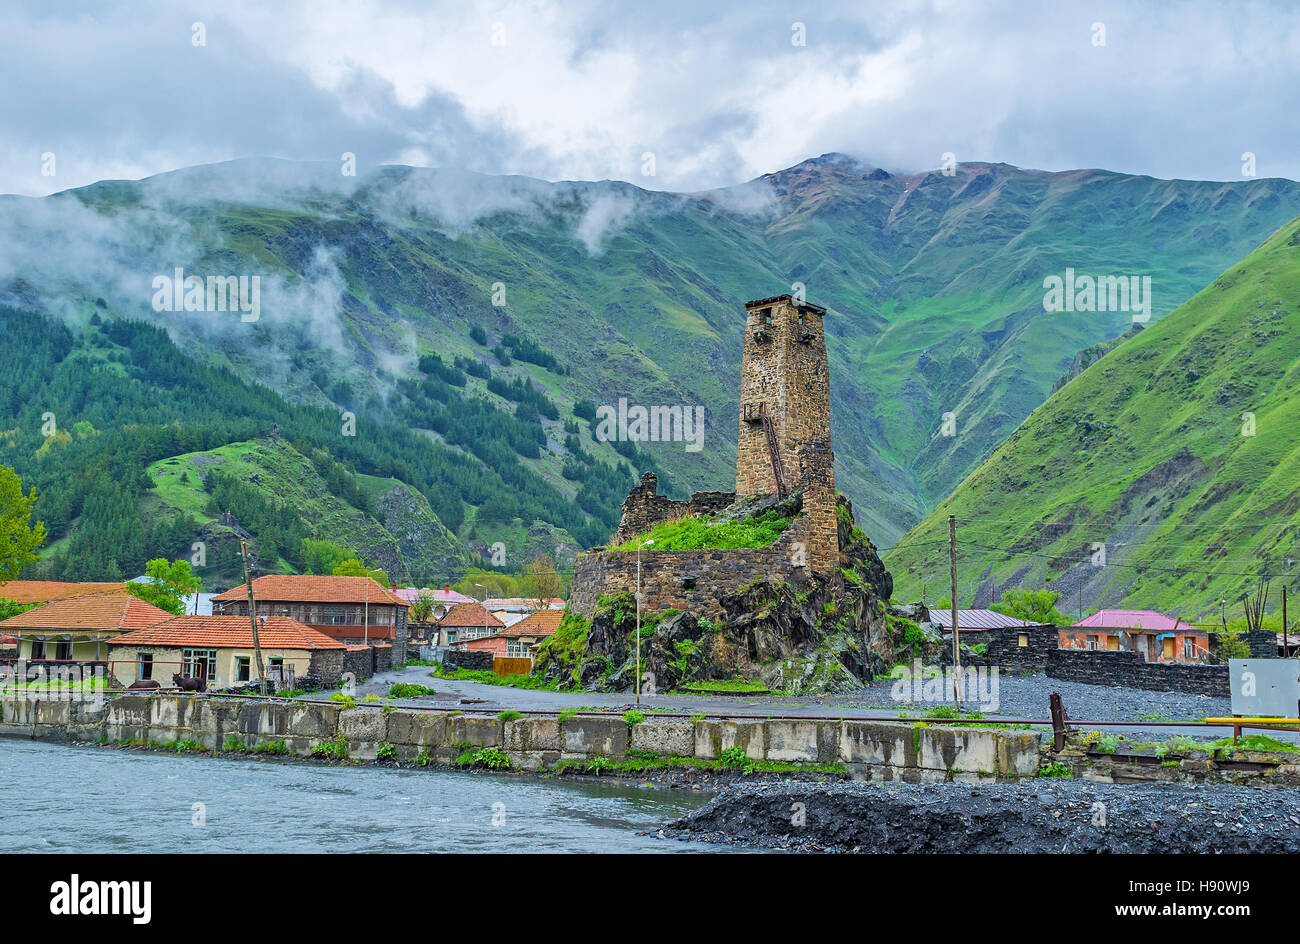 The ruins of the medieval castle of Sno village with high stone tower, built at the bank of Snostskali river, Georgia. - Stock Image